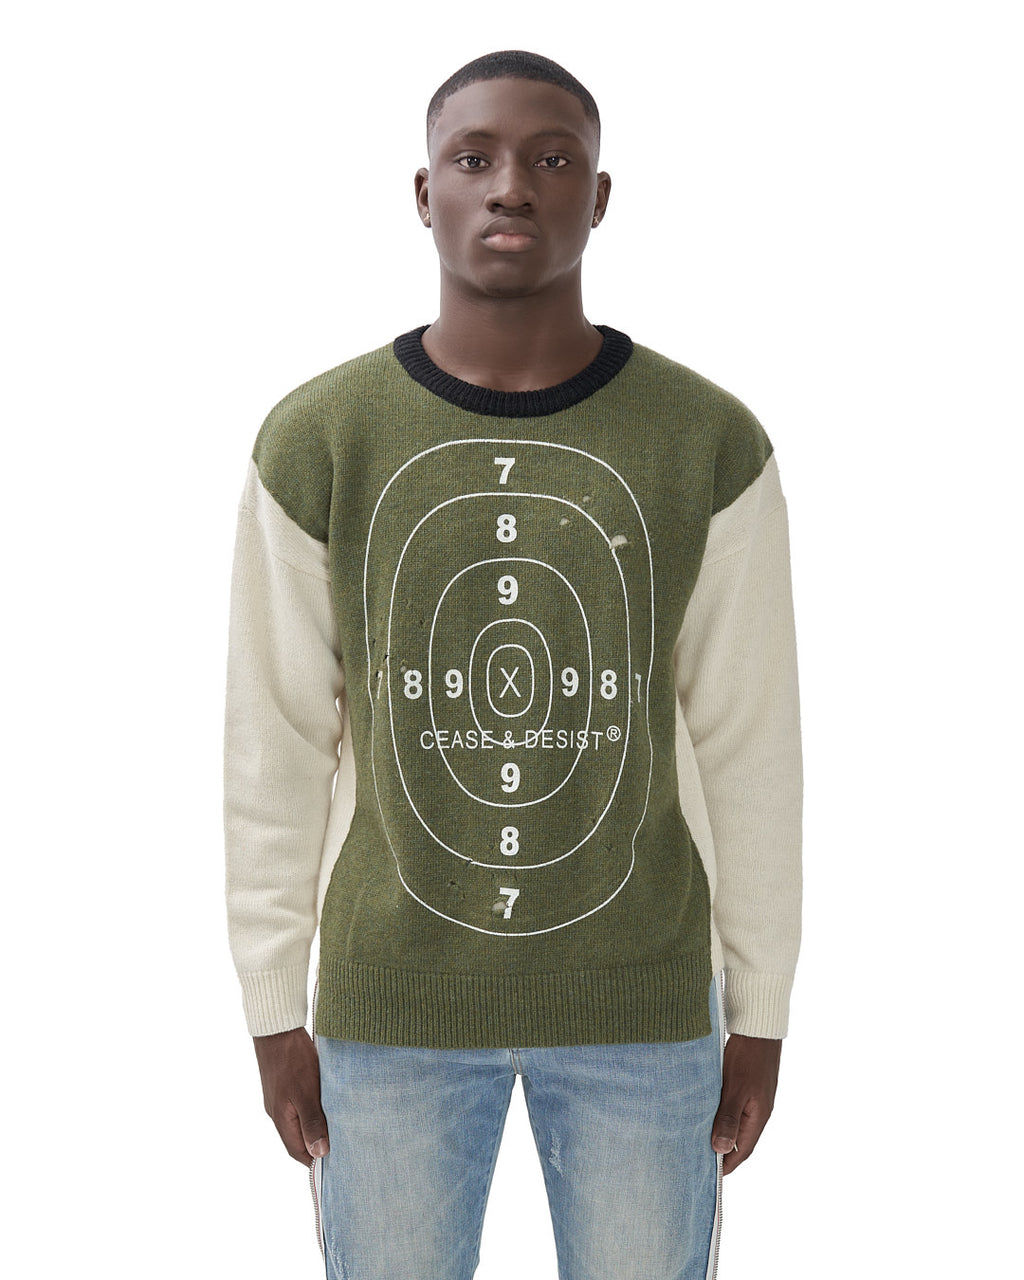 CEASE & DESIST BULLSEYE SWEATER